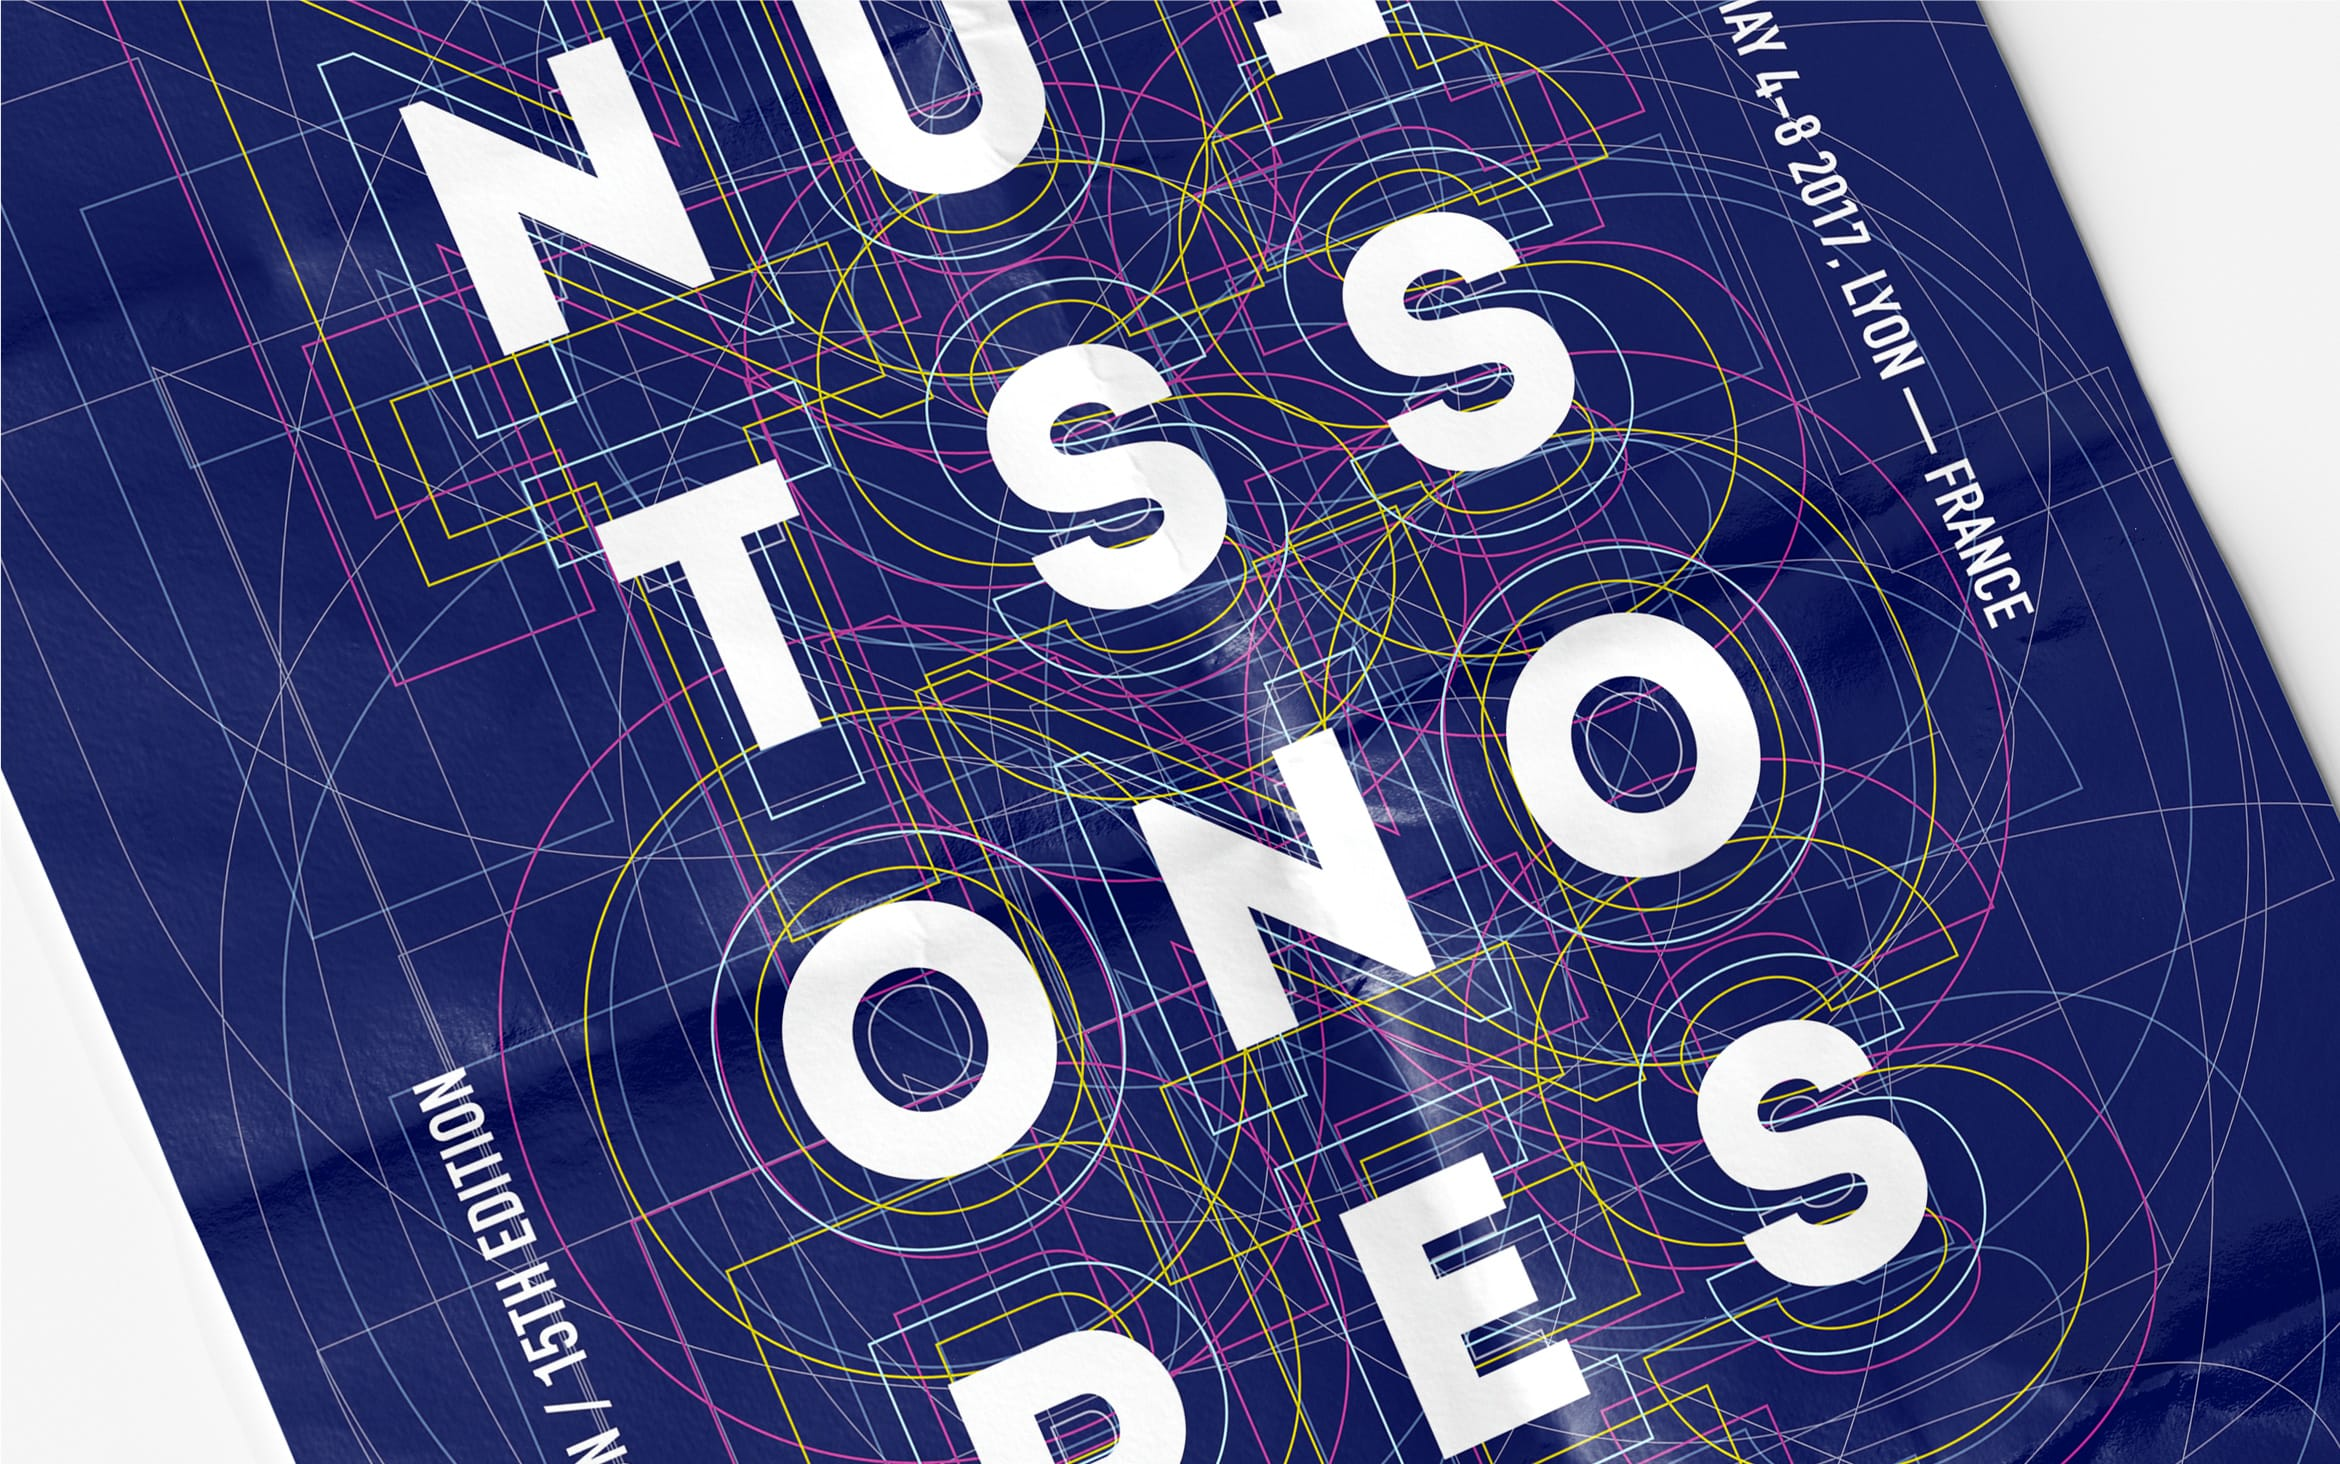 nuitssonores_detail